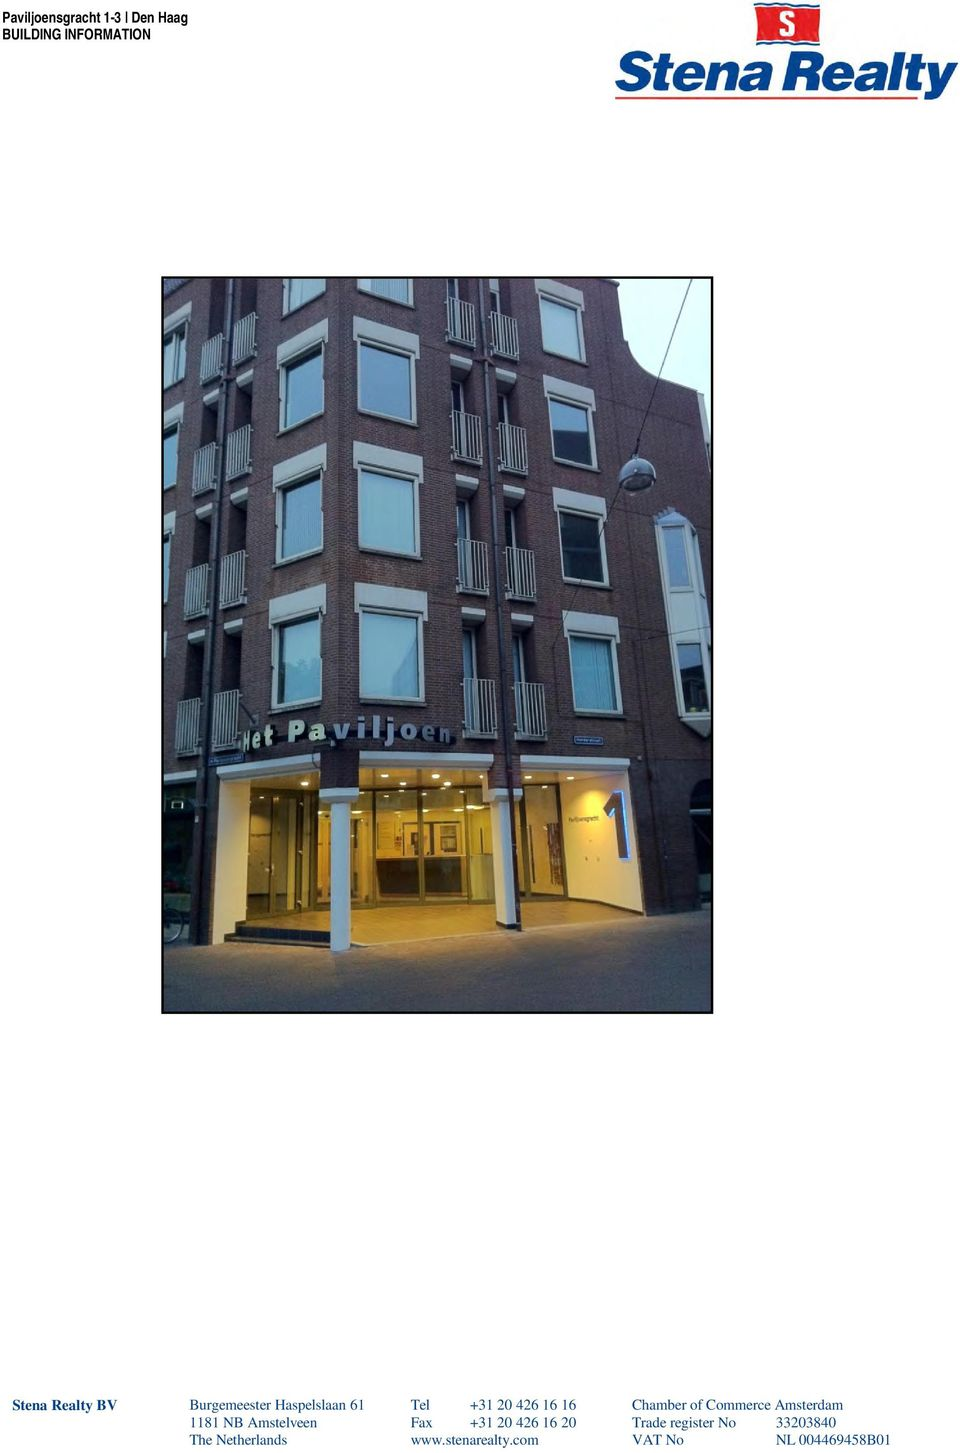 Commerce Amsterdam 1181 NB Amstelveen Fax +31 20 426 16 20 Trade